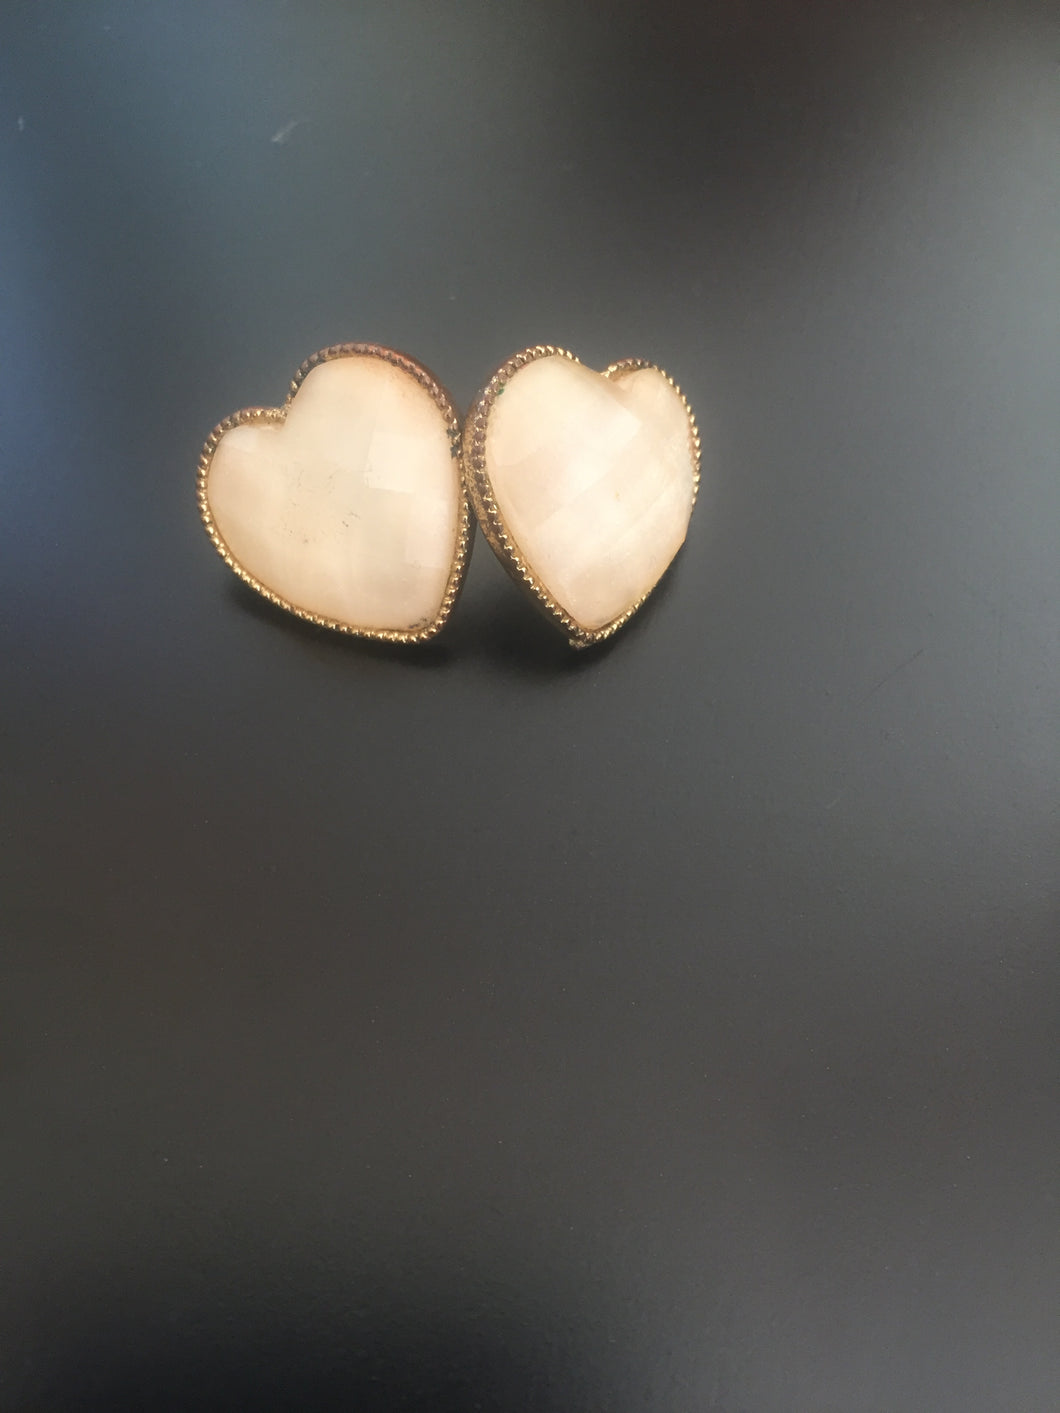 Heart shaped earrings-earrings-Elinye_ithuba